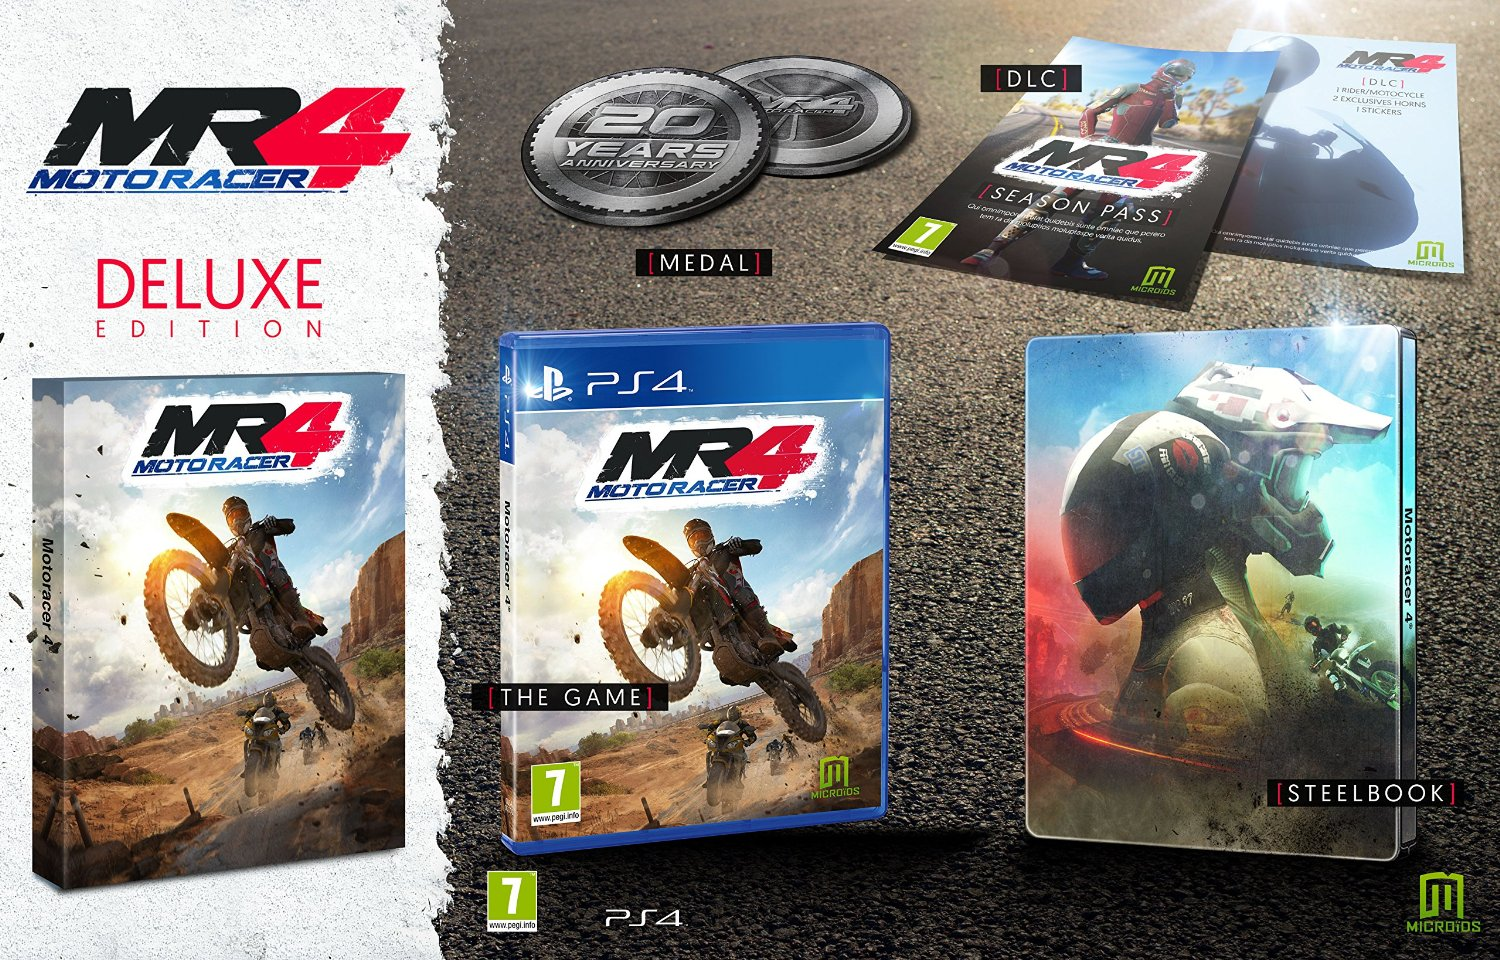 Moto Racer 4 Deluxe Edition includes season pass and steelbook